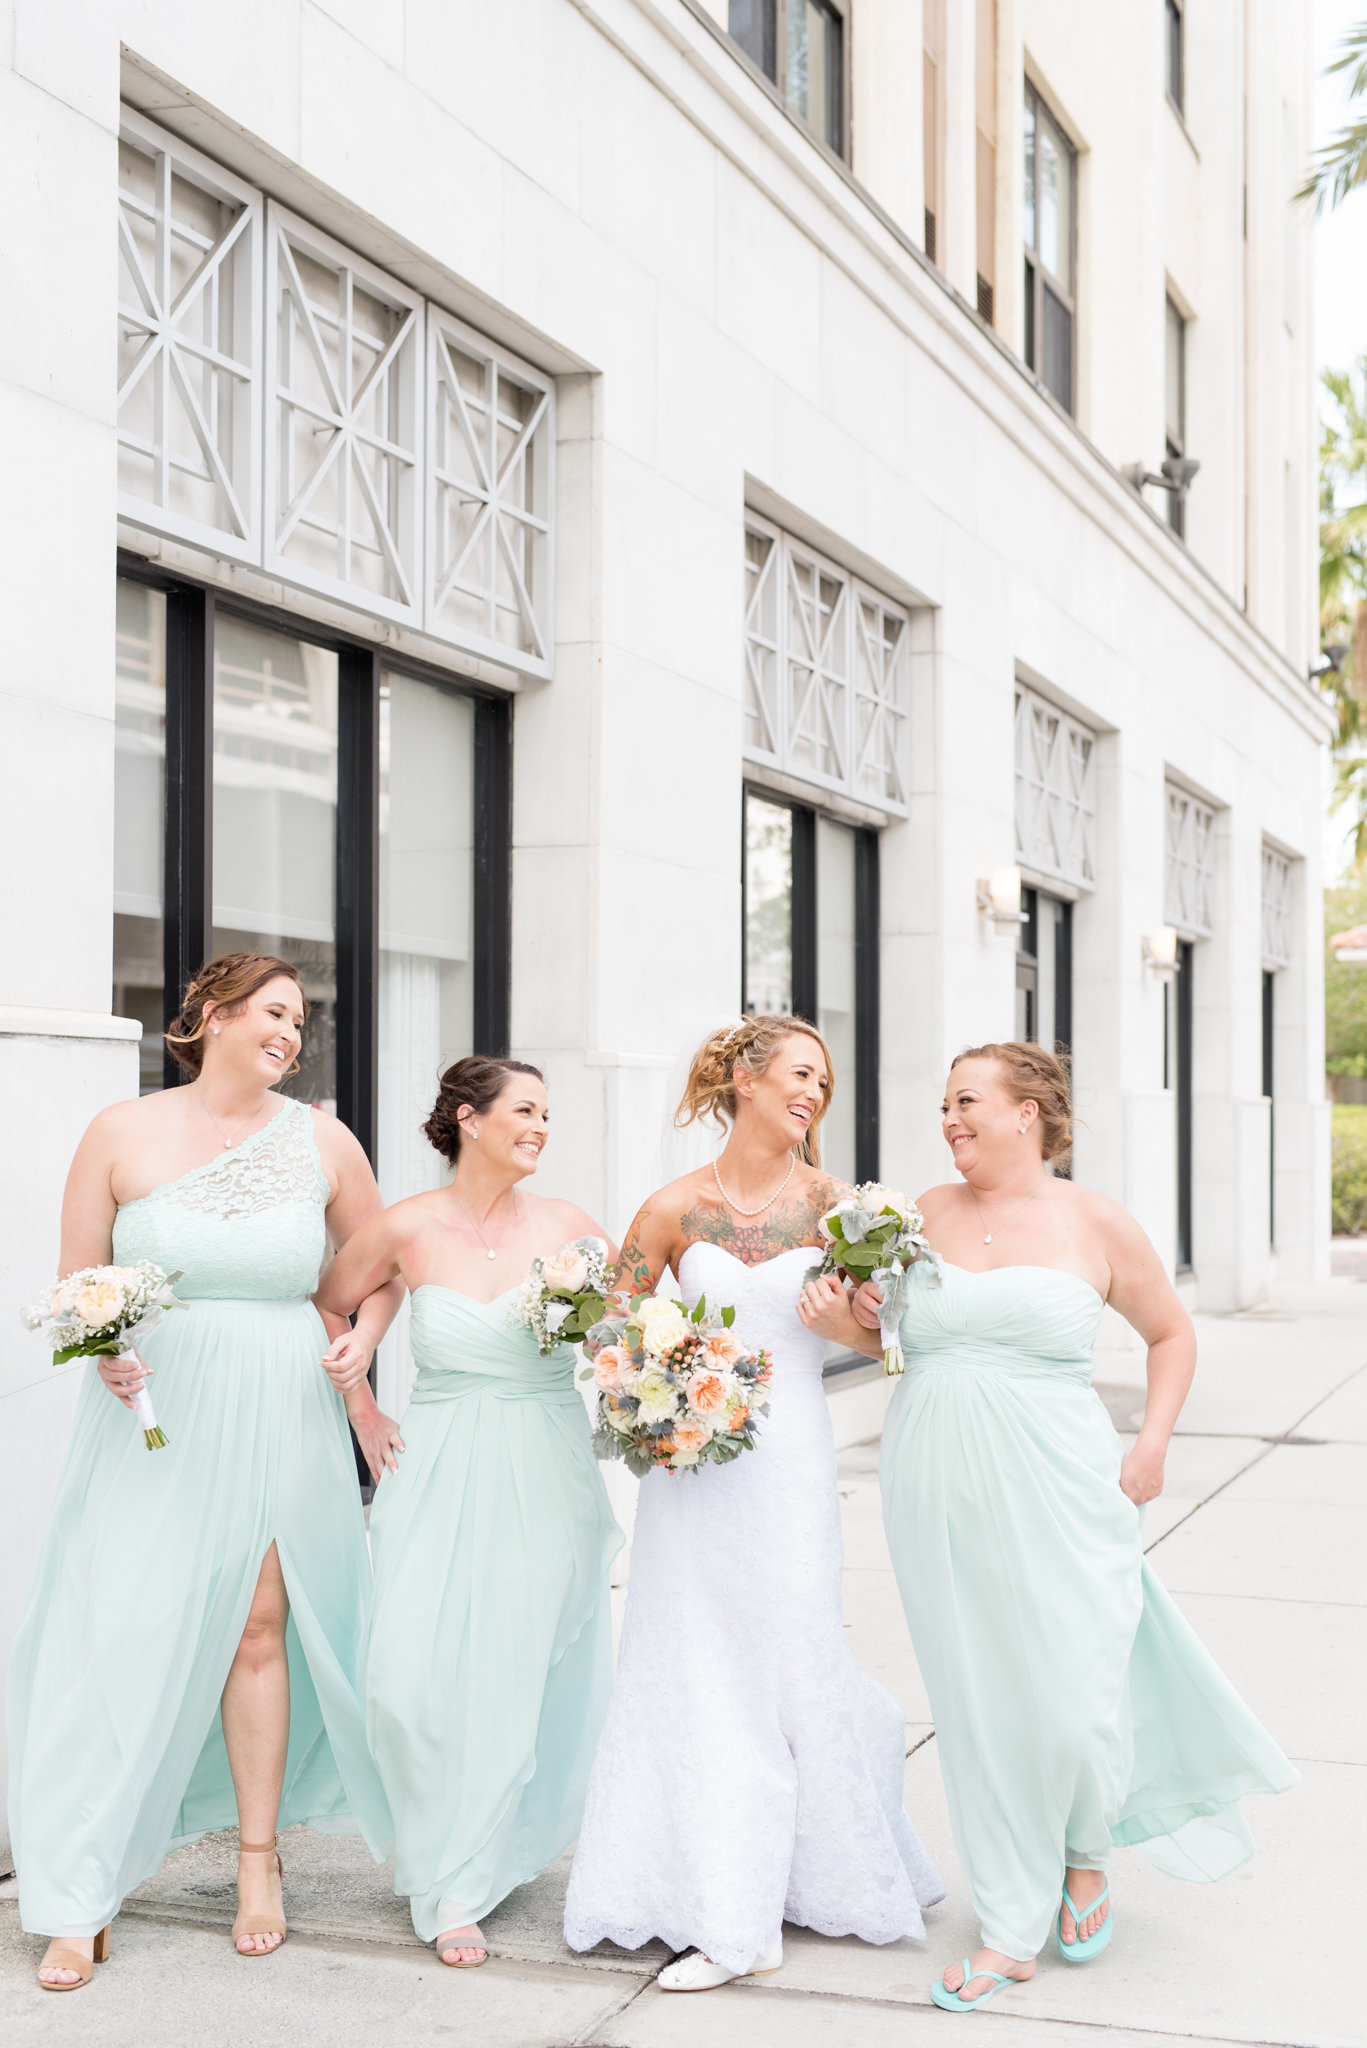 St.-Petersburg-Mint-Bridesmaids-Dresses